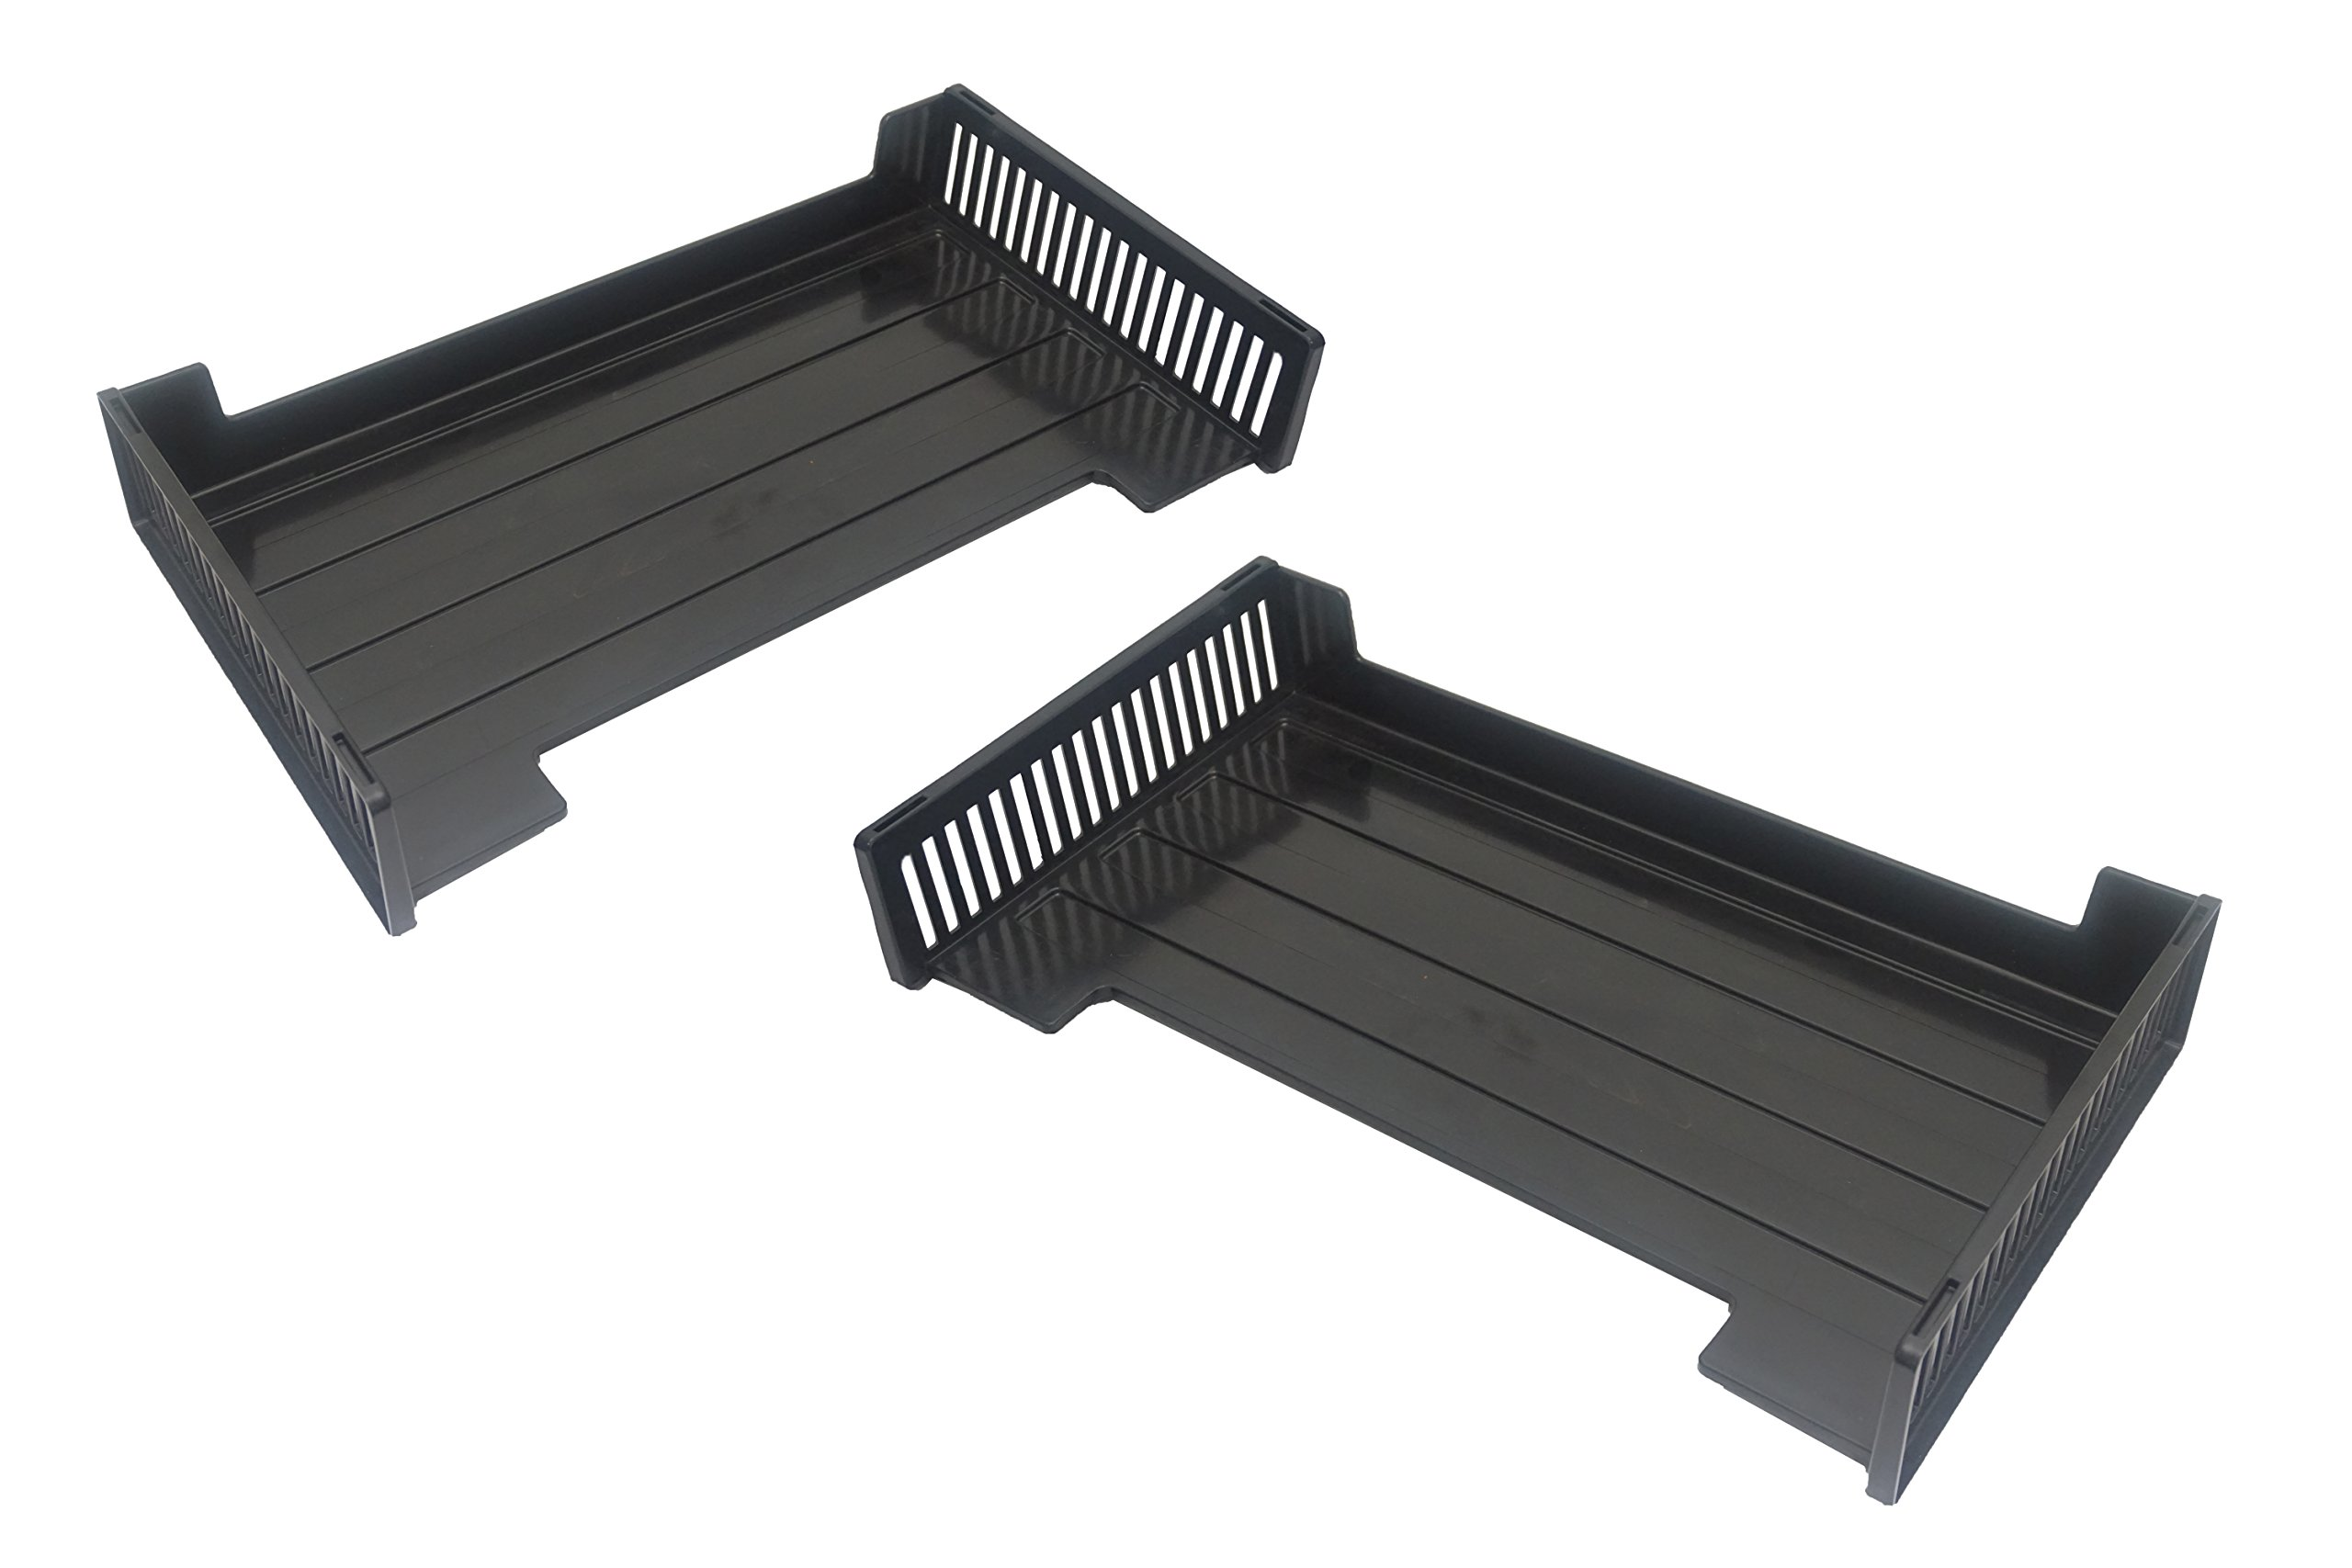 Victor Stacking Legal Size Office Desk Letter Trays, Set of 2, Black, Recycled Plastic